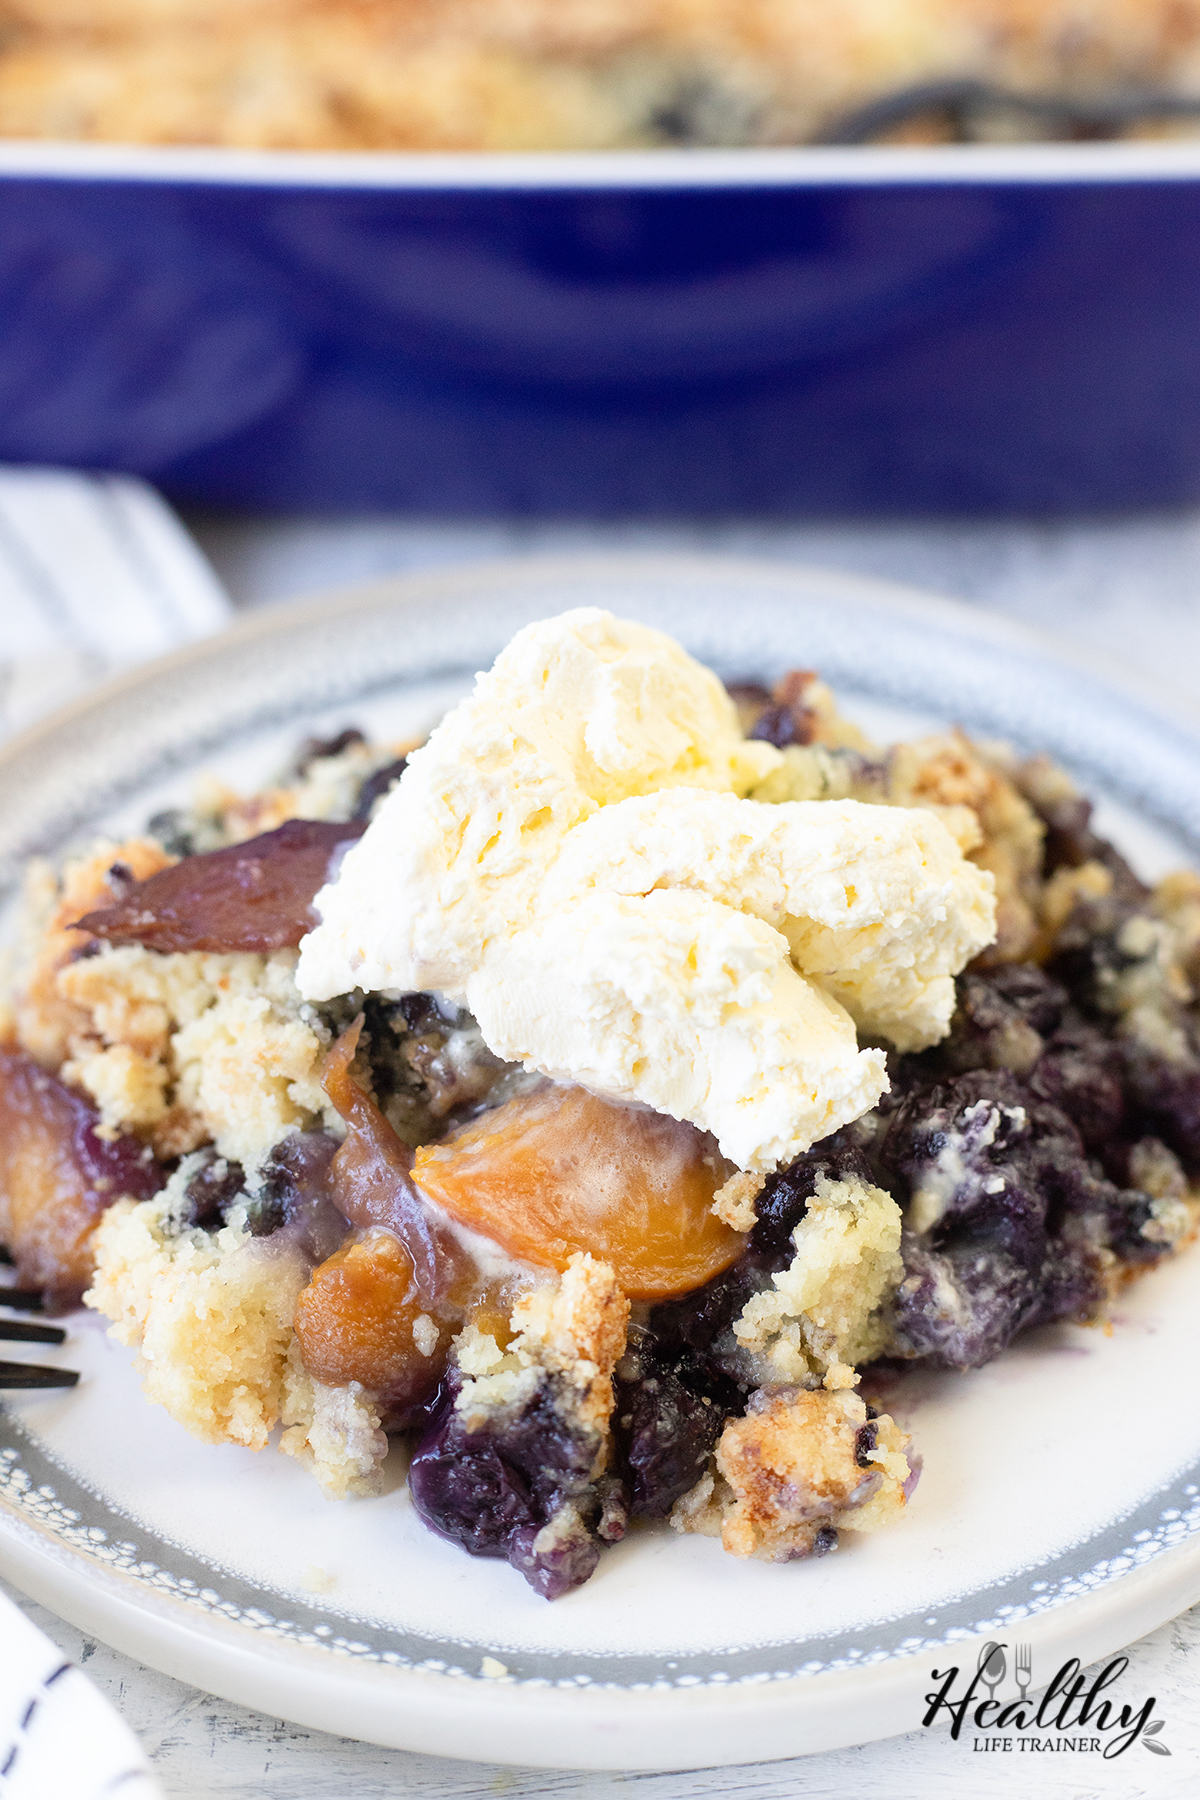 peach and blueberry cake topped with whipped cream